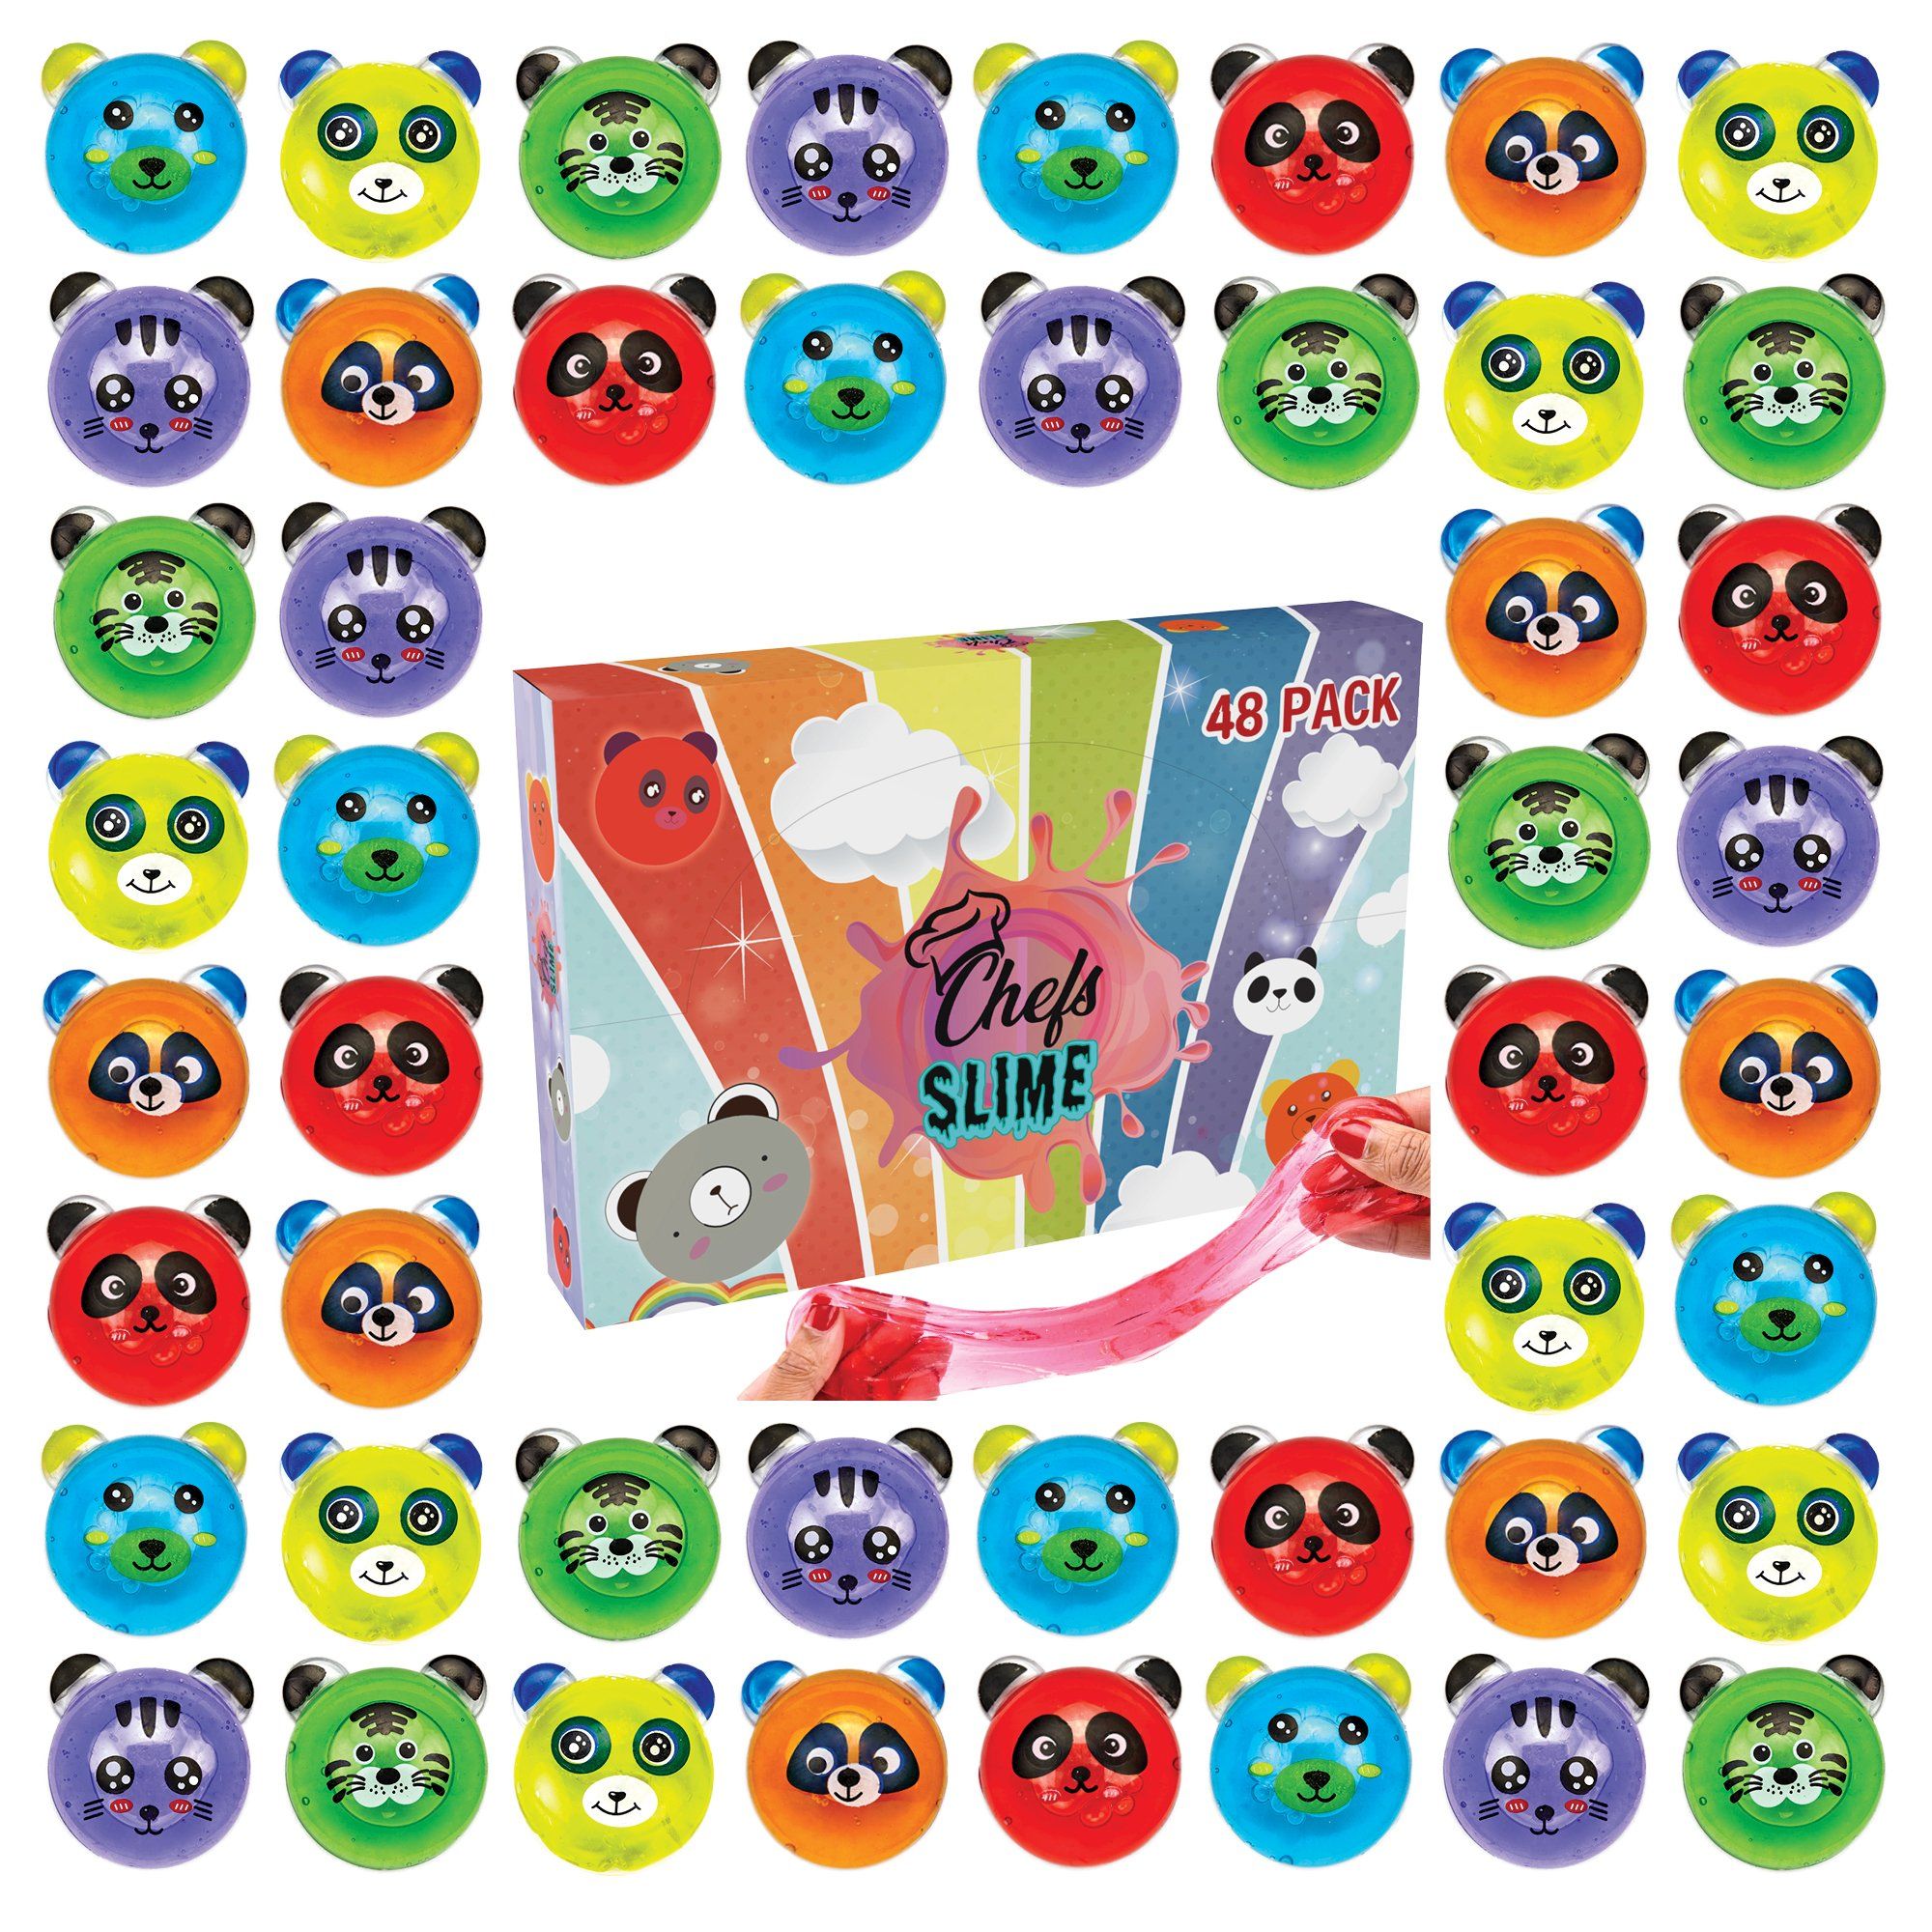 ChefSlime - New: | 48 Pack | Fluffy & Stretchy Animal Mud Slime Putty | Non Sticky | Stress Relief, Super Soft & Squishy Sludge Toy for Kids and Adults | Jumbo Pack